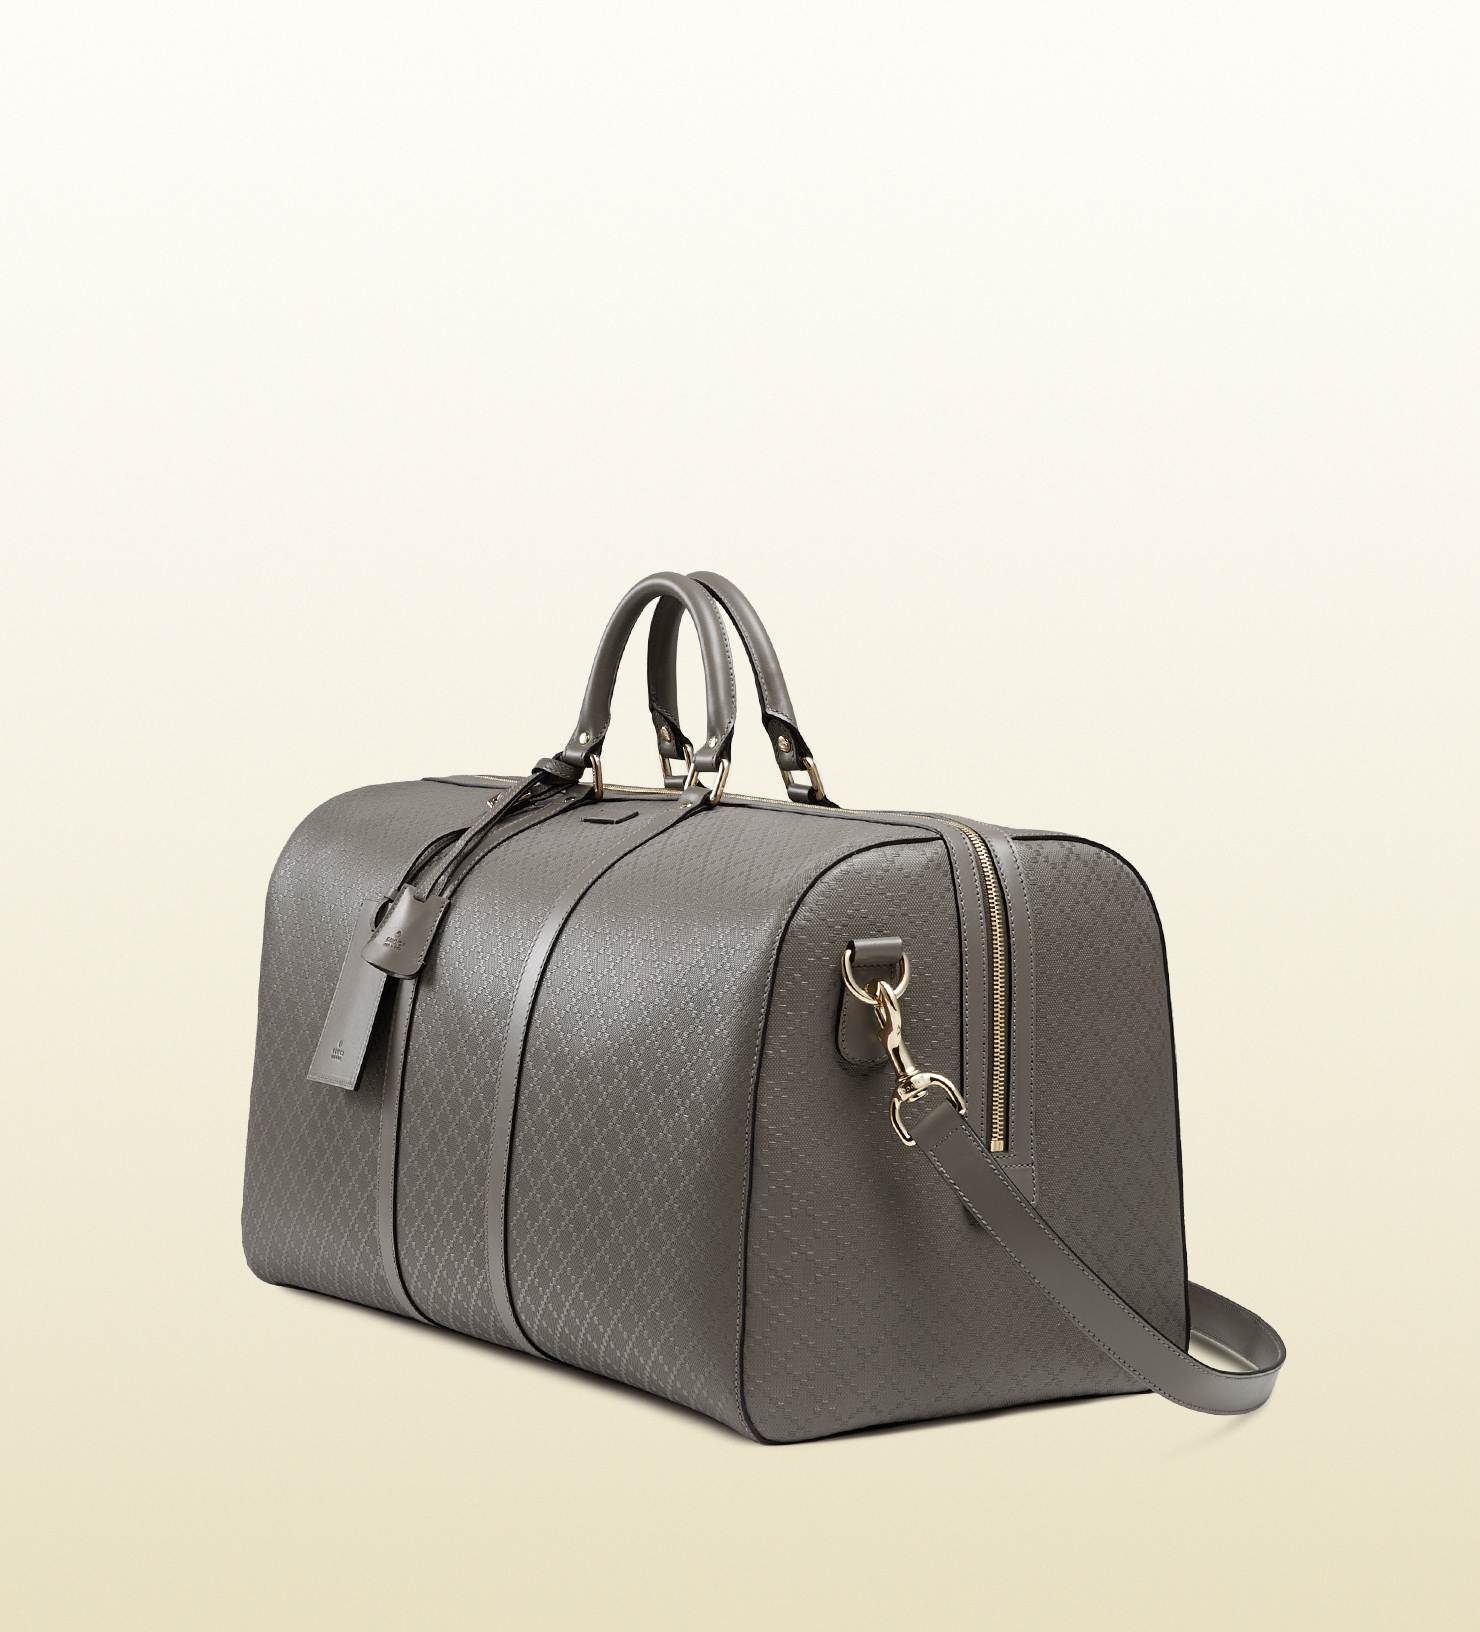 e8edd57efcc Gucci Bright Diamante Leather Carry-on Duffle Bag in Gray for Men - Lyst